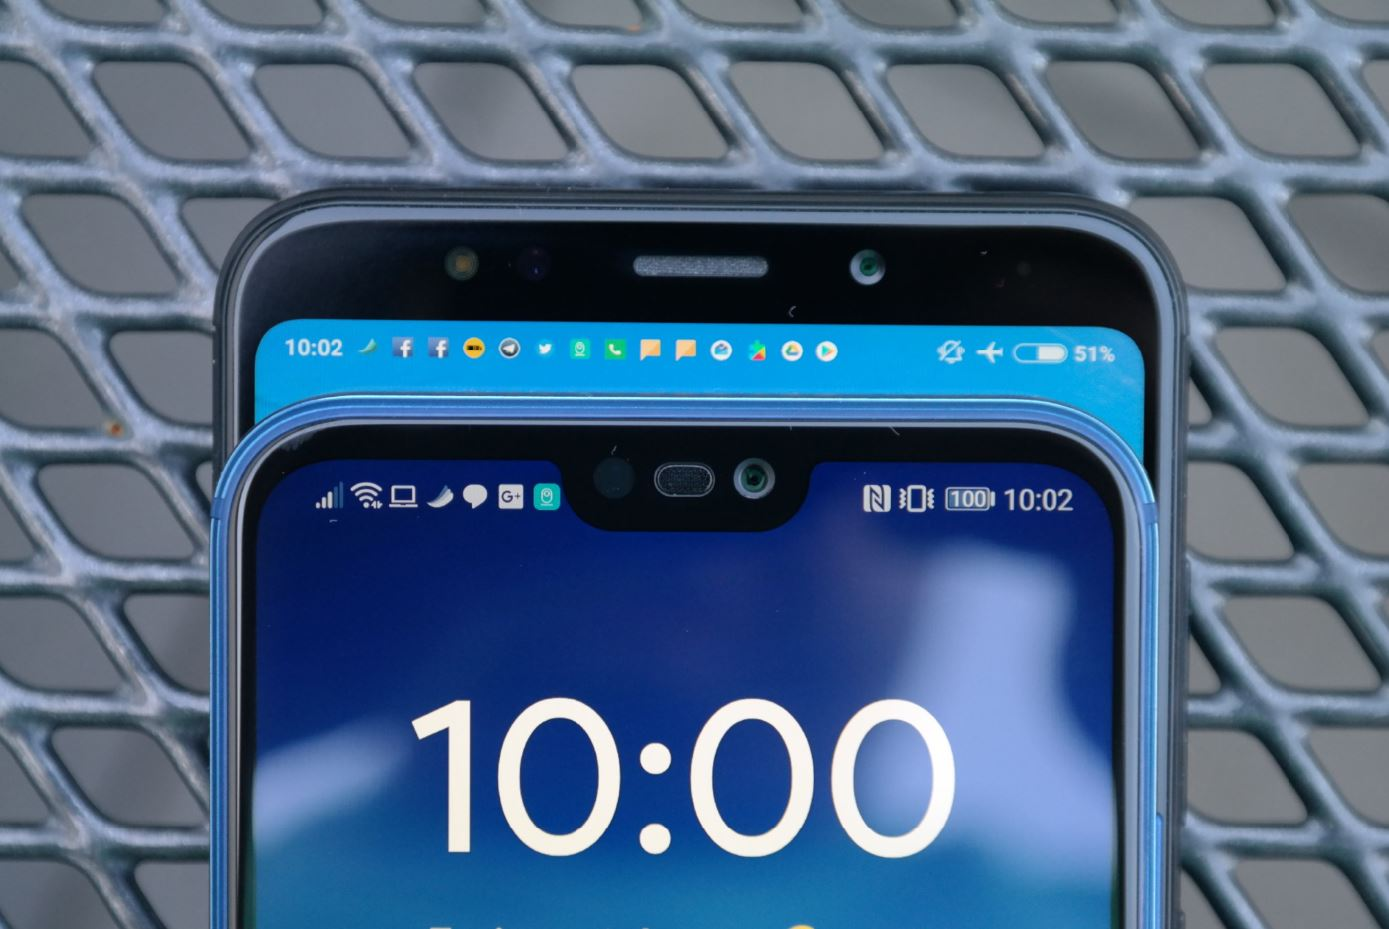 Huawei P20 lite Redmi 5 Plus Display-Notch Vergleich